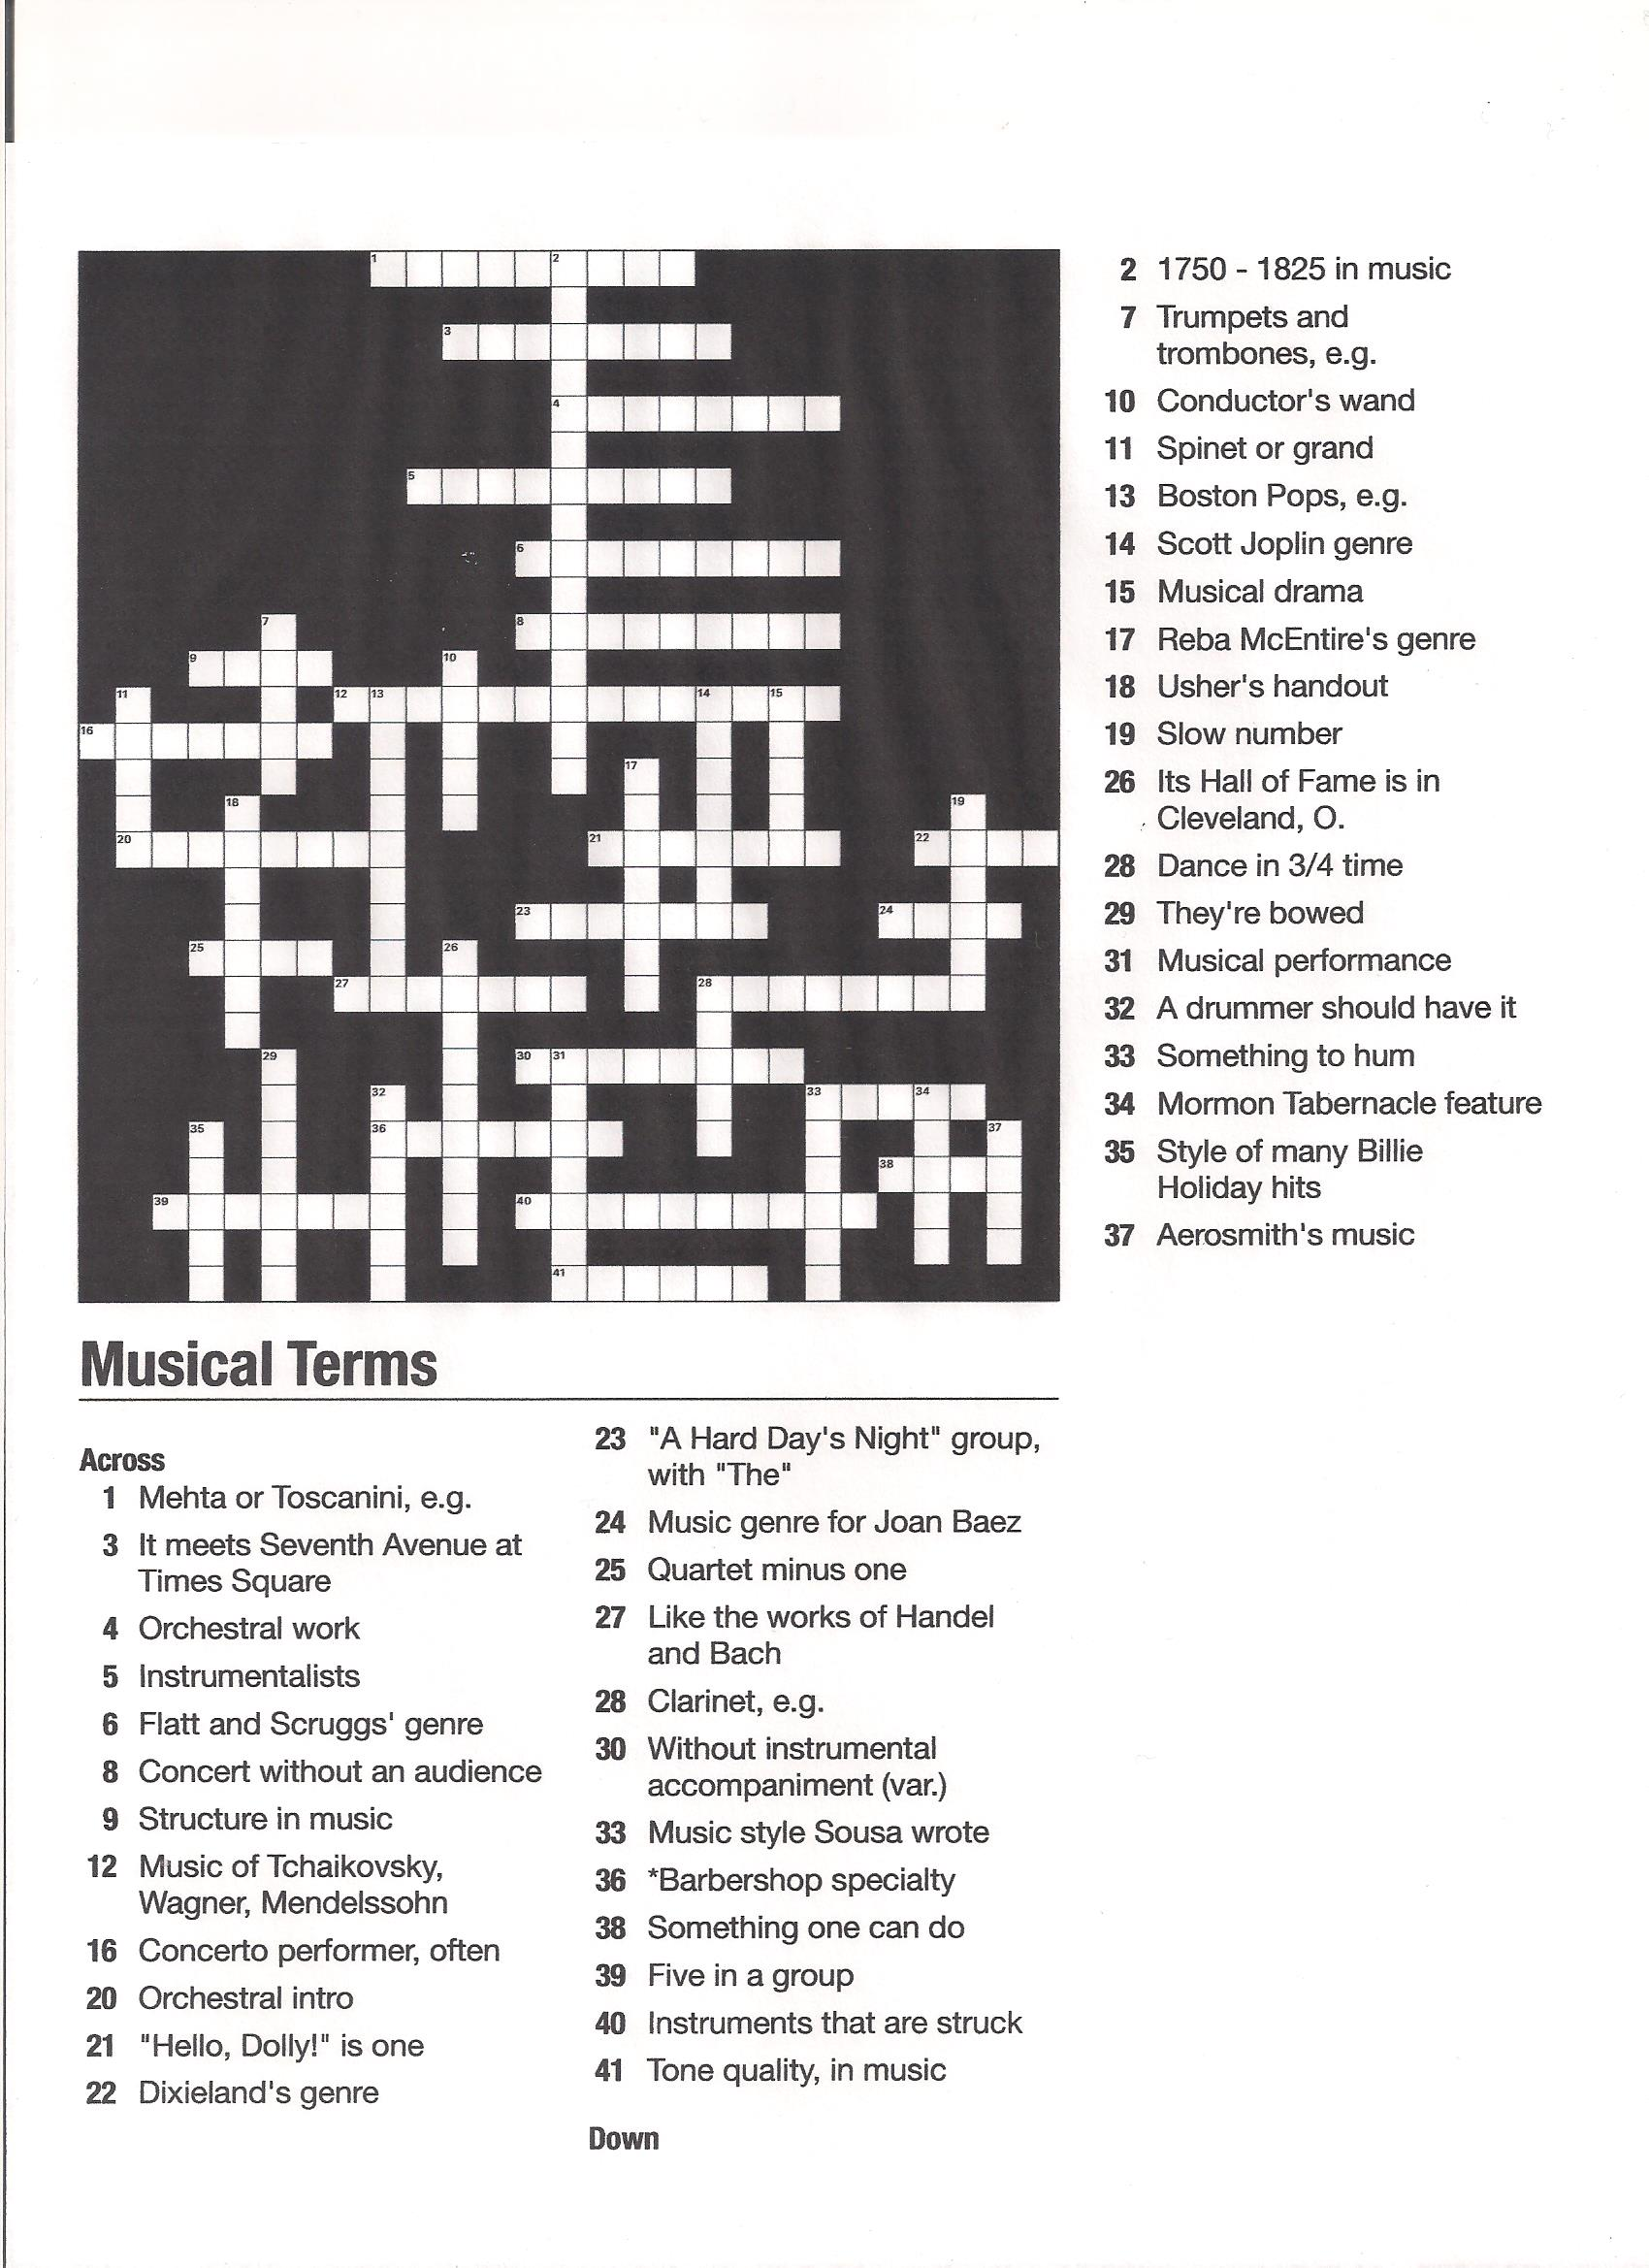 Musical Terms Crossword Puzzle